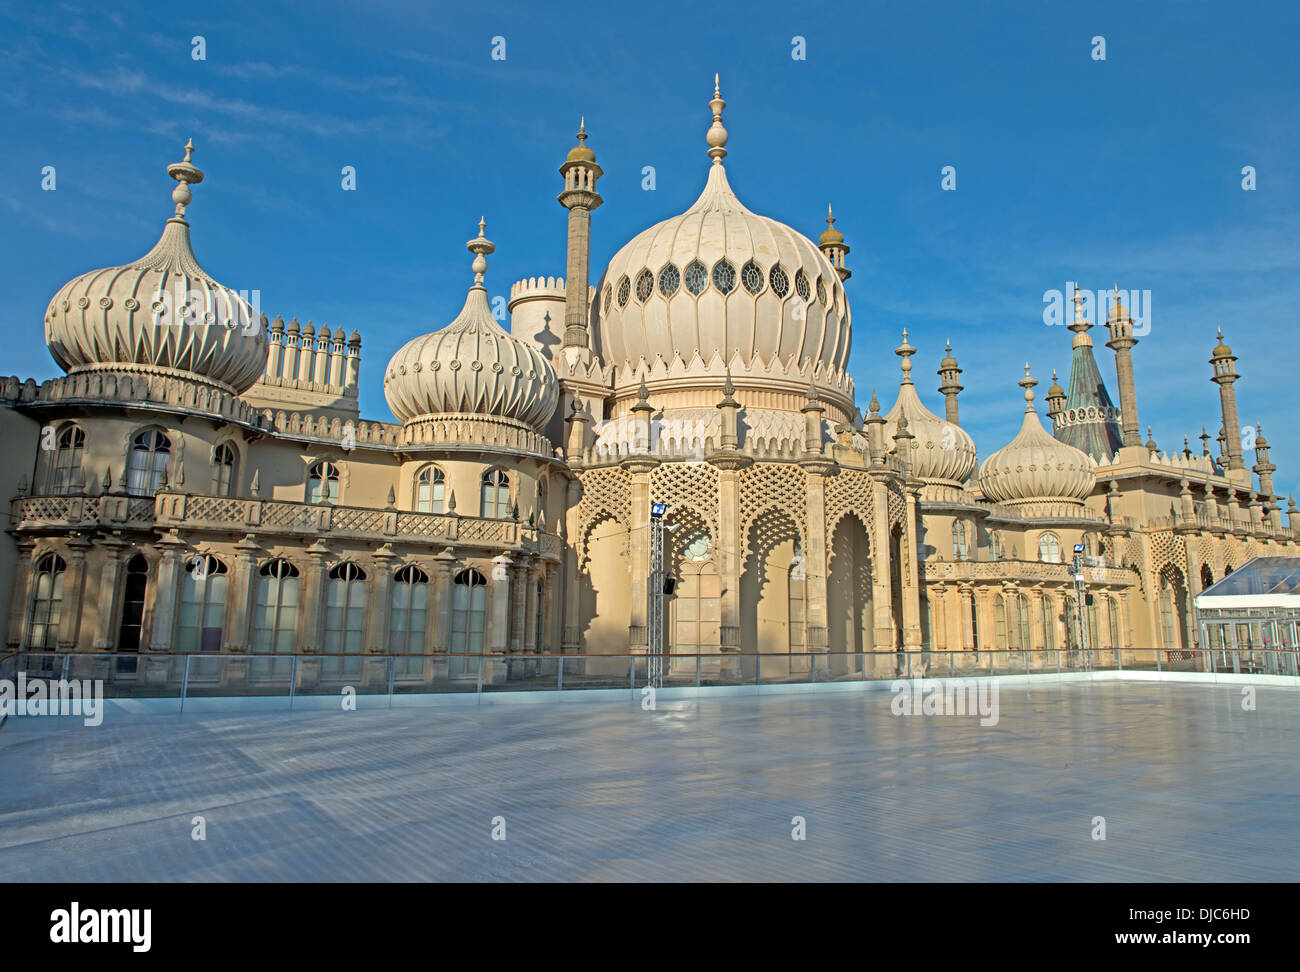 The Ice Skating Rink At The Royal Pavillion Gardens, Brighton, England, Uk - Stock Image